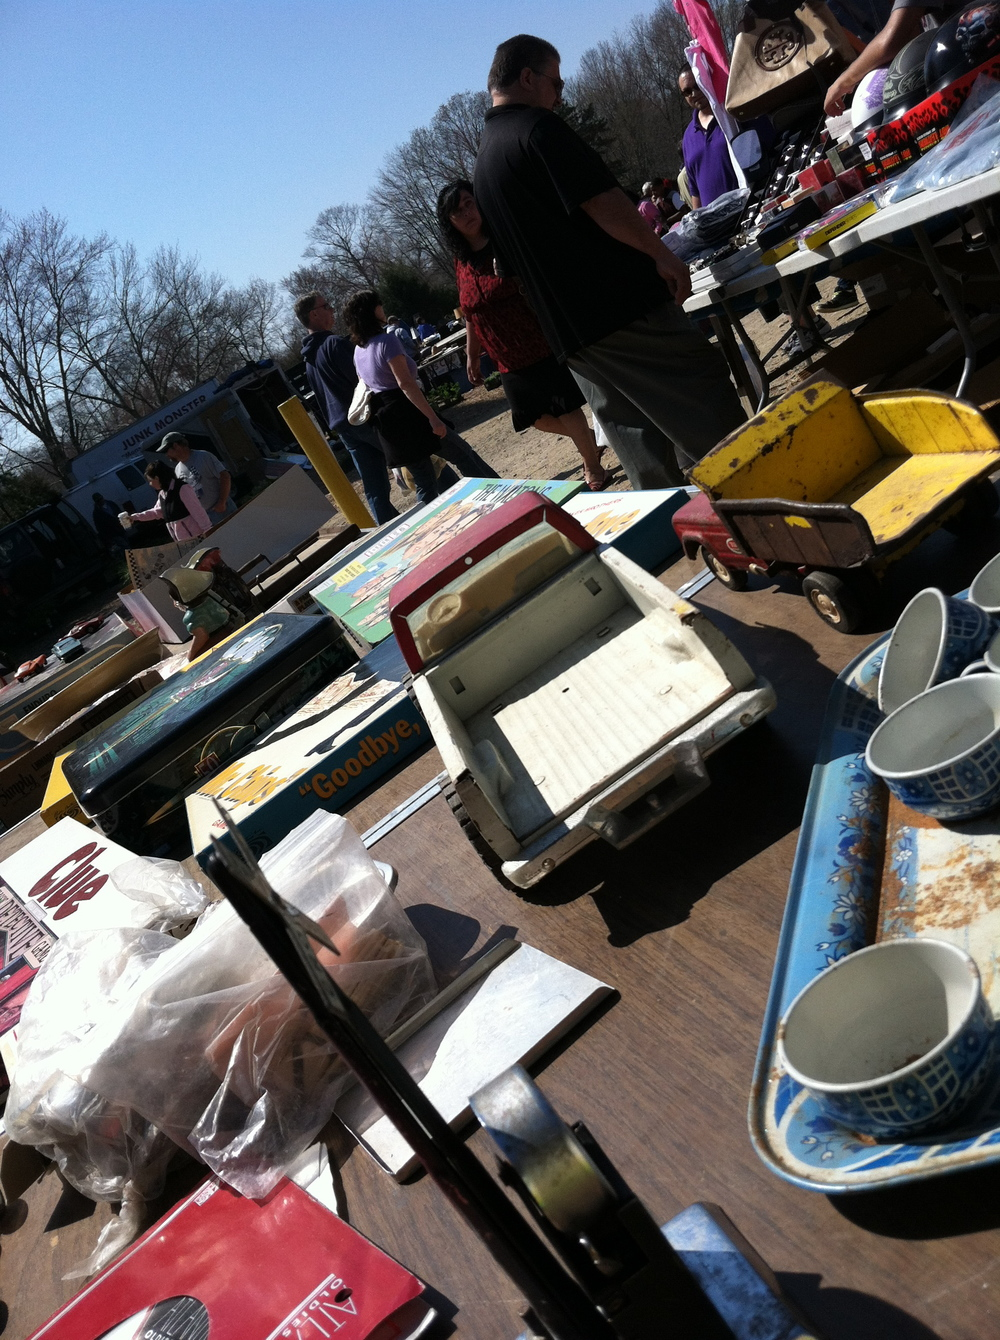 Do you like flea markets? There is a massive local one on sunday mornings that will blow your mind.